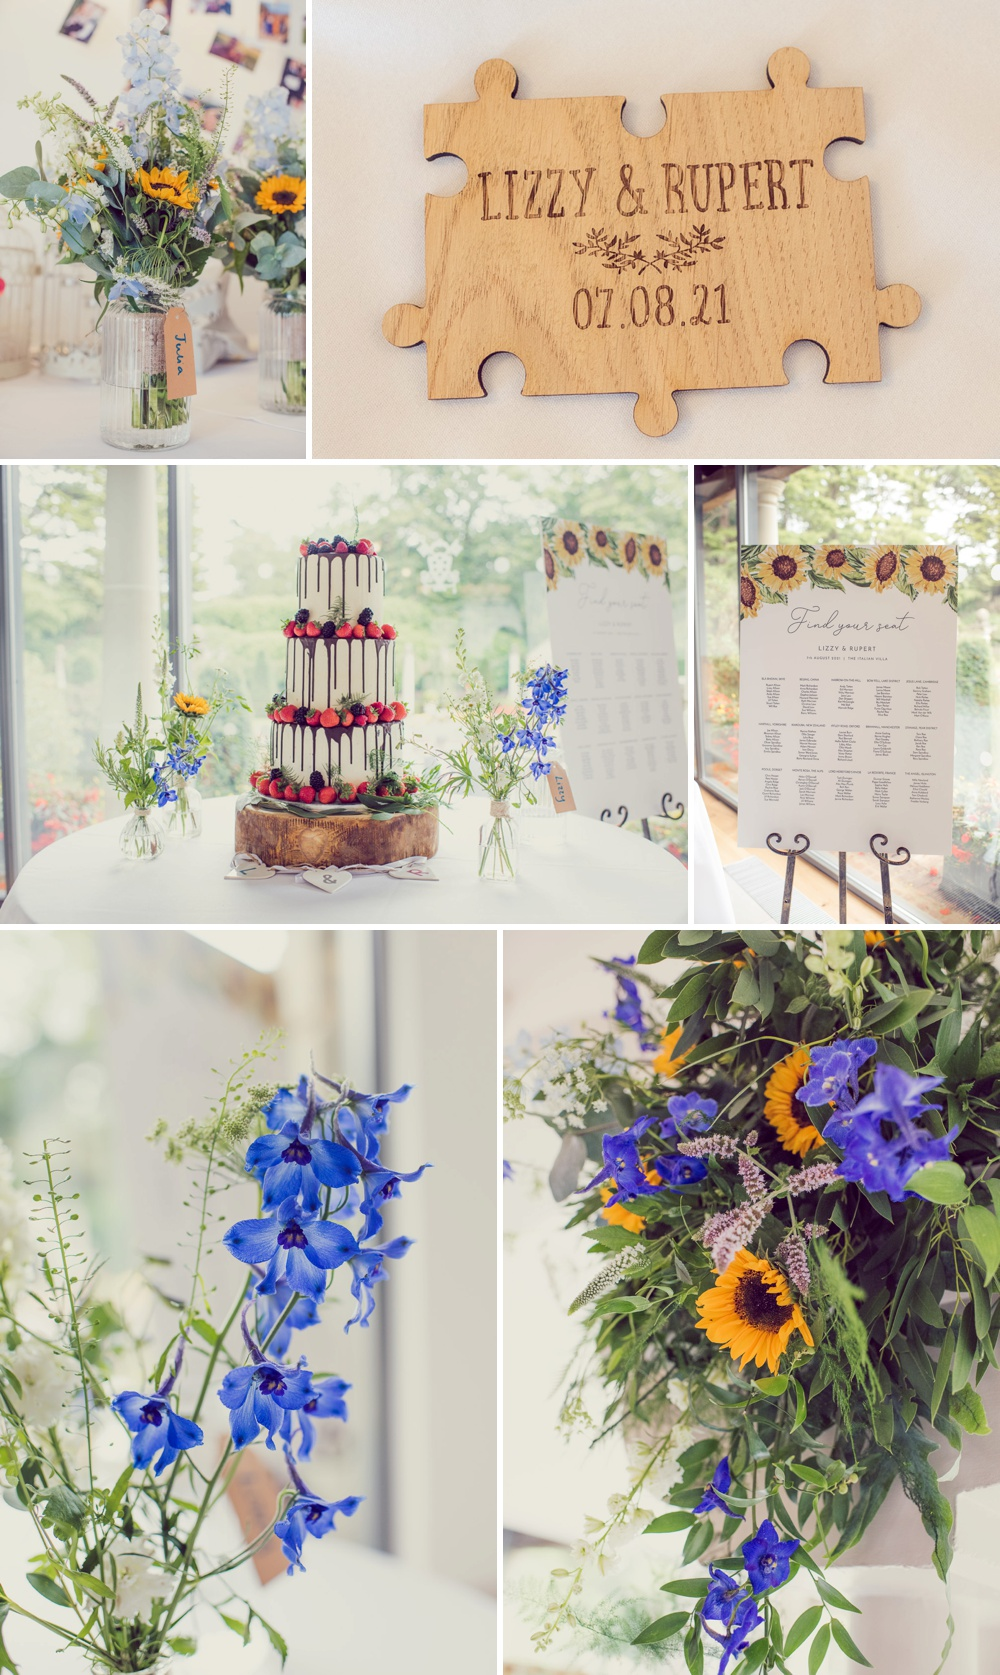 Wedding cake and flowers at Italian Villa at Compton Acres in poole